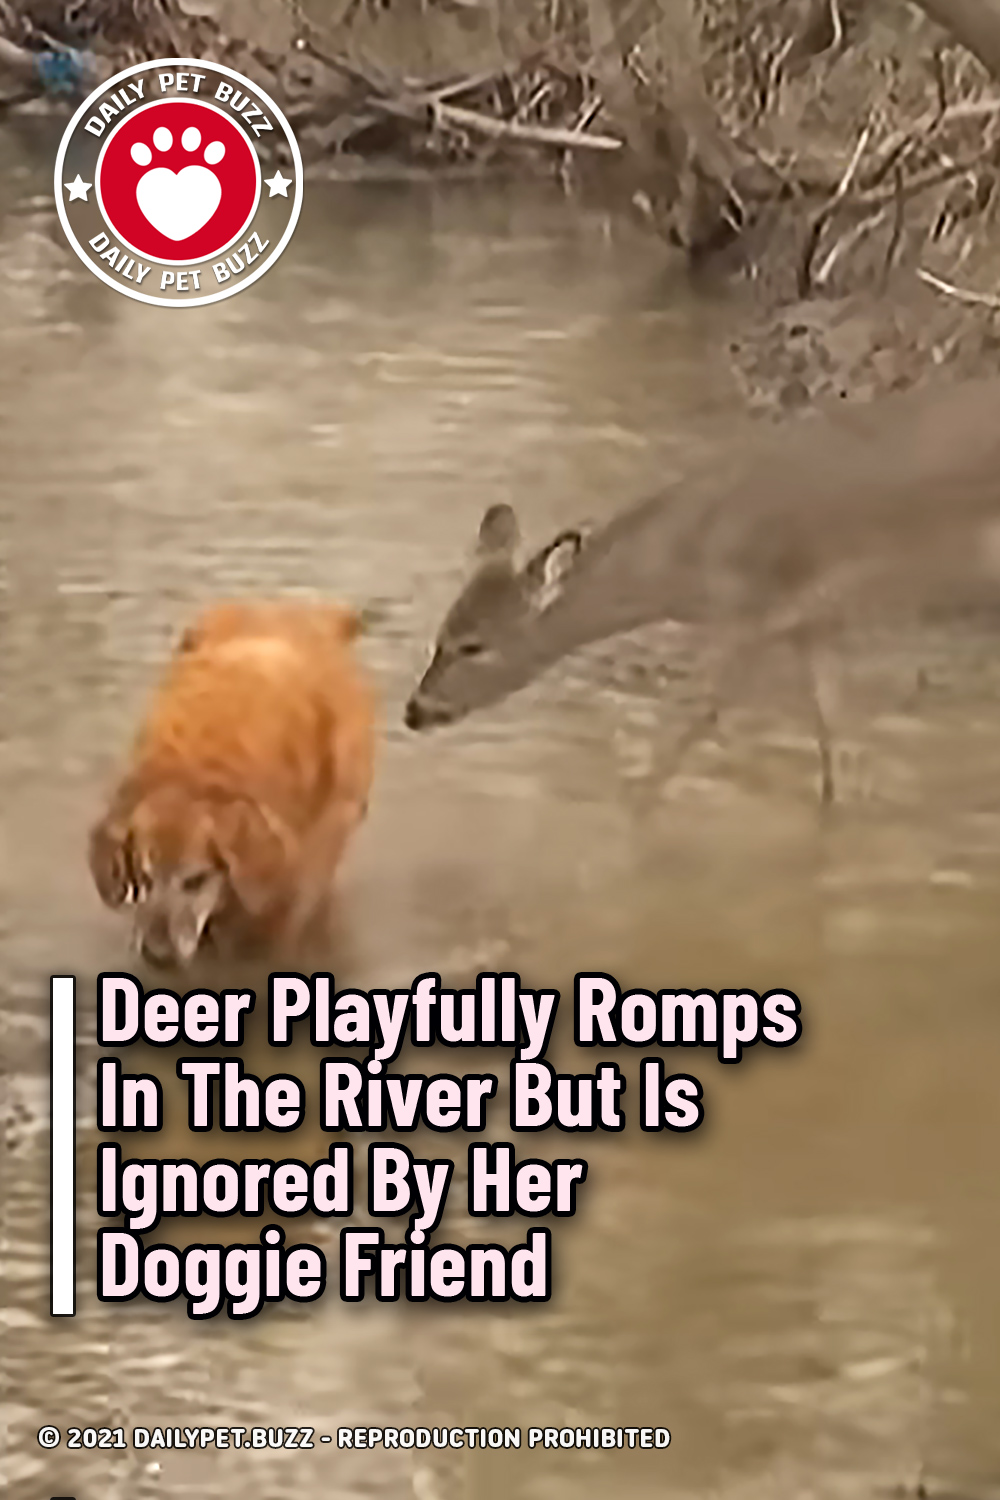 Deer Playfully Romps In The River But Is Ignored By Her Doggie Friend